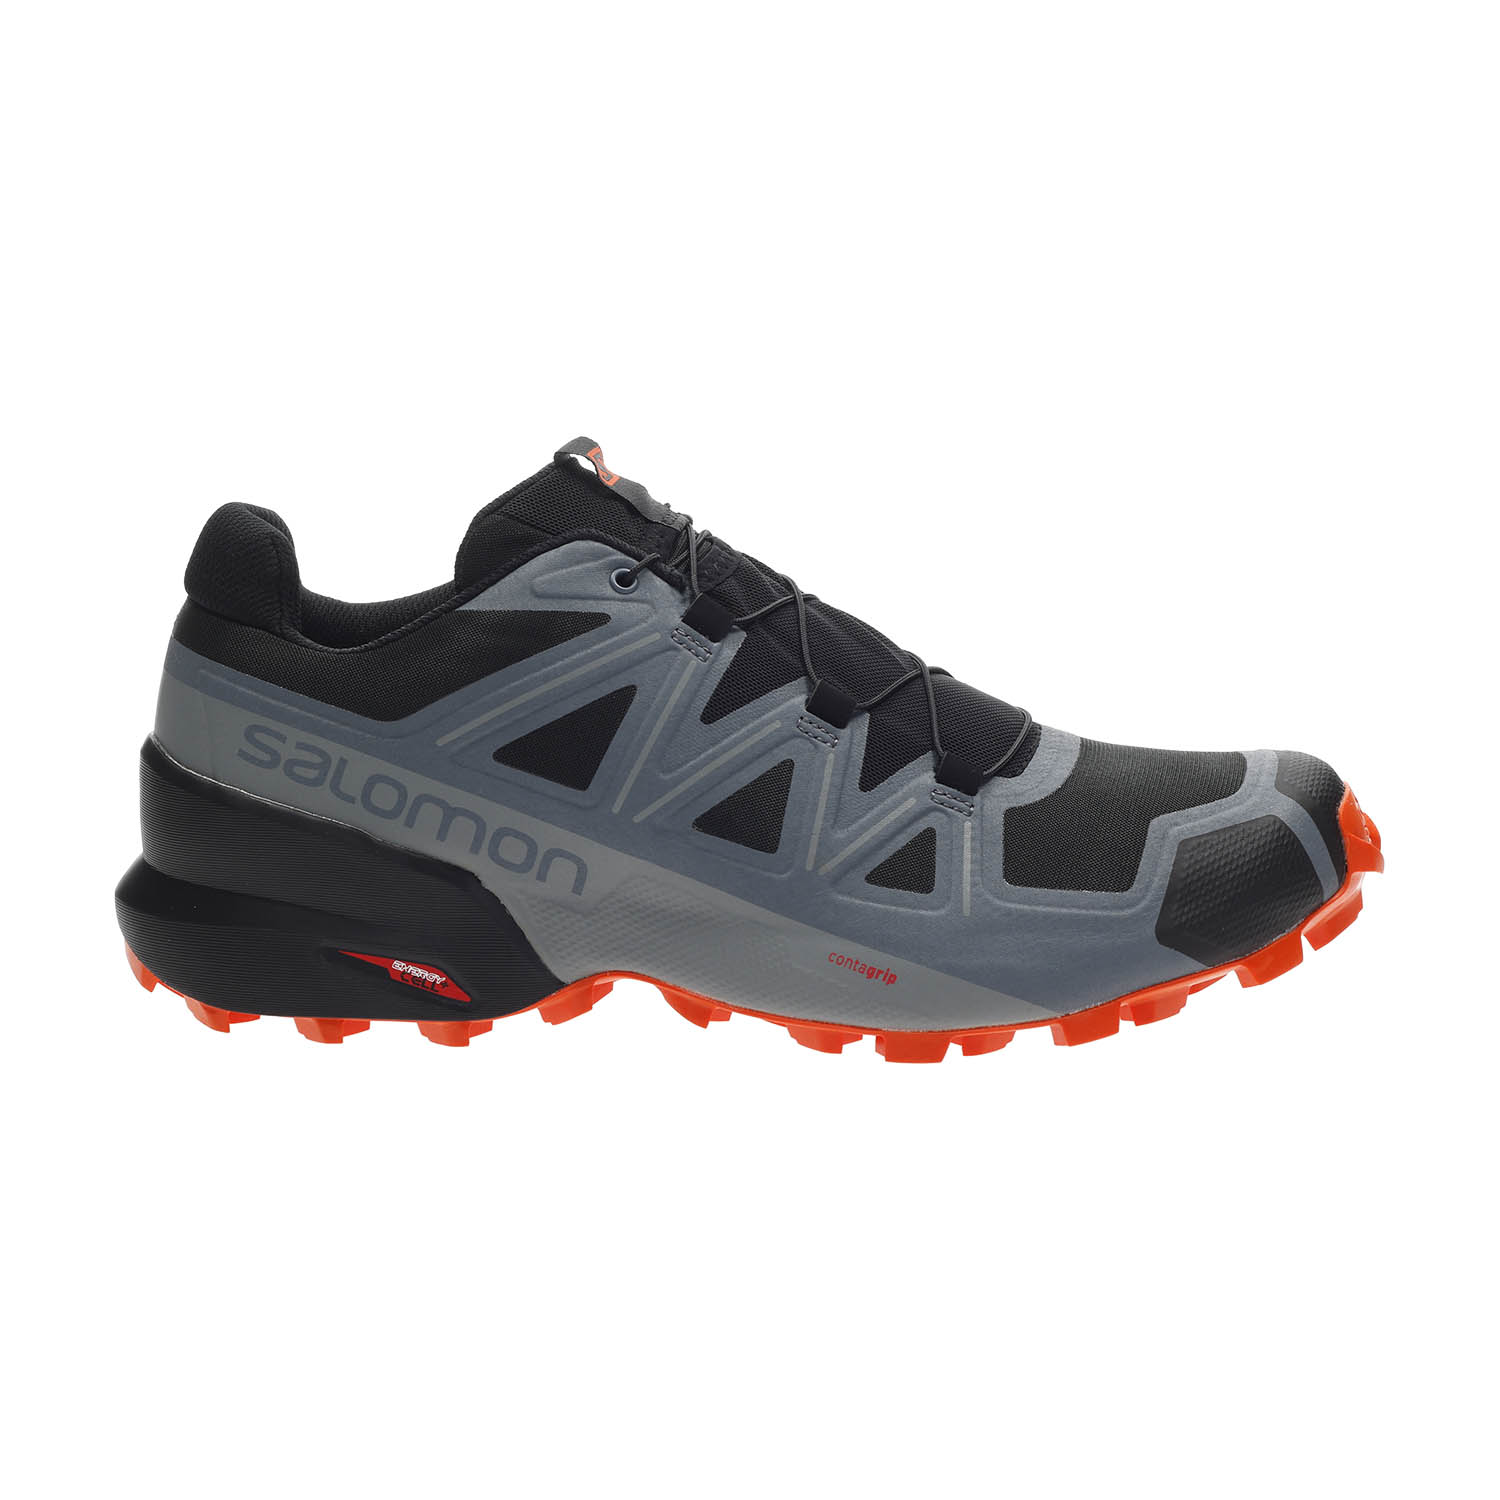 Salomon Speedcross 5 - Black/Stormy Weather/Red Orange